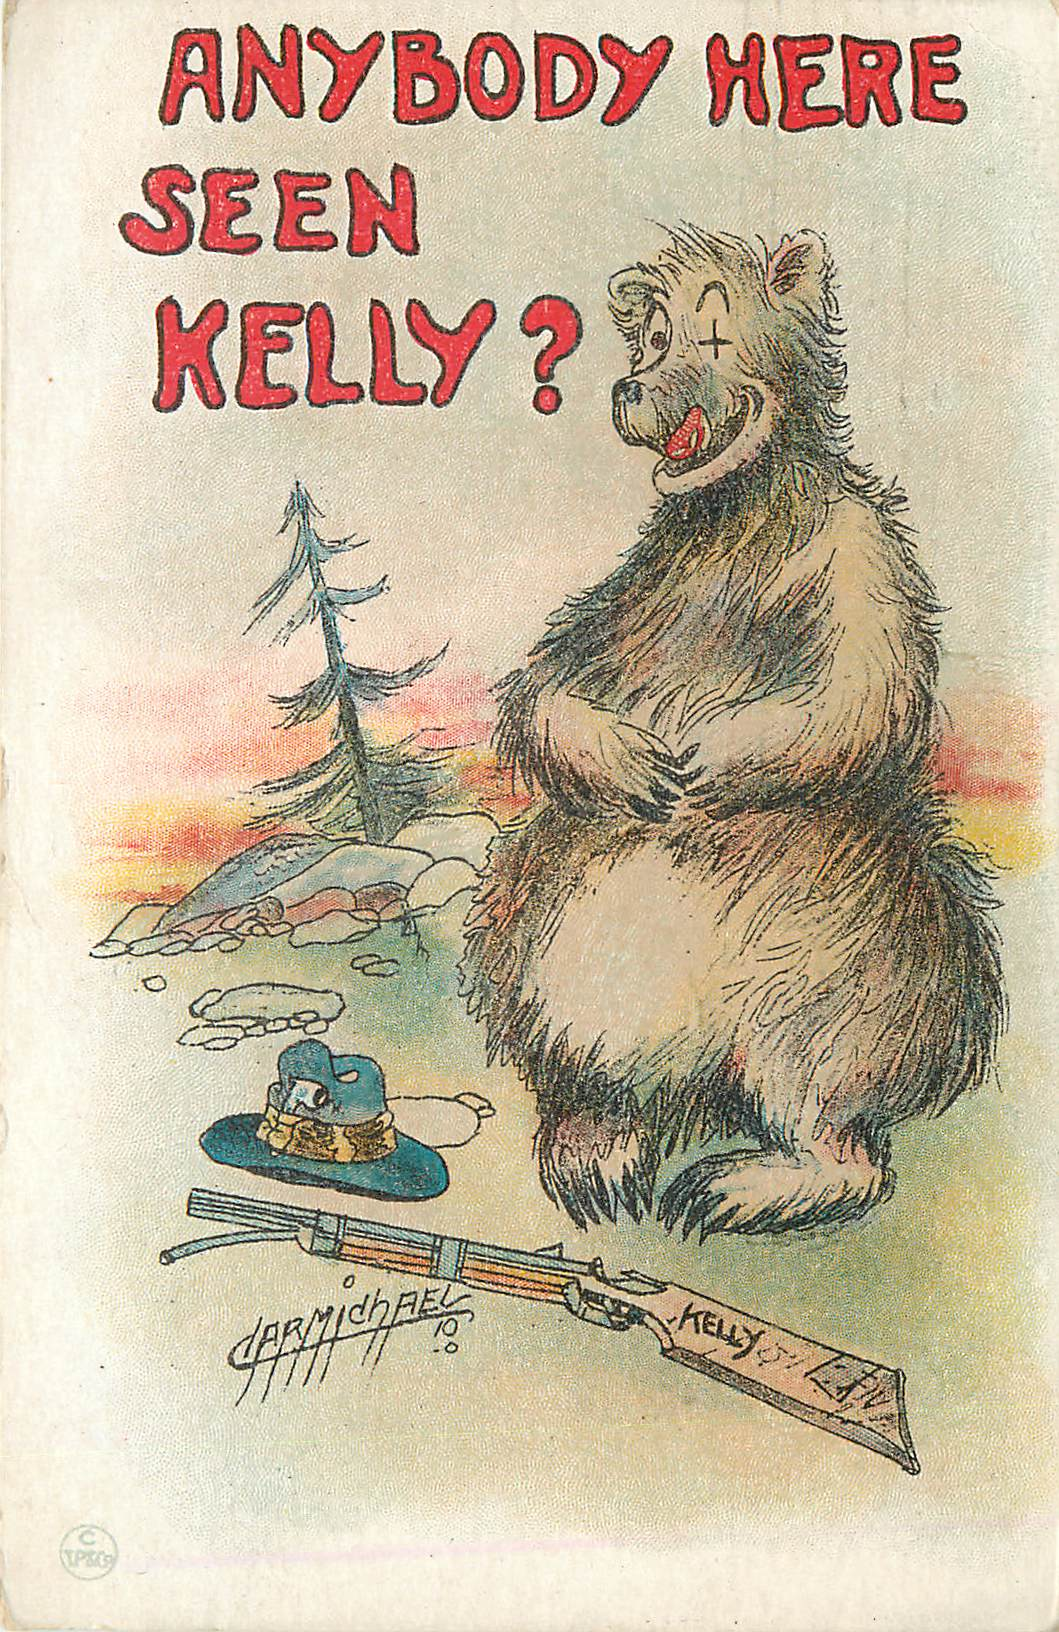 """Anybody Here Seen Kelly?"" With Bear"